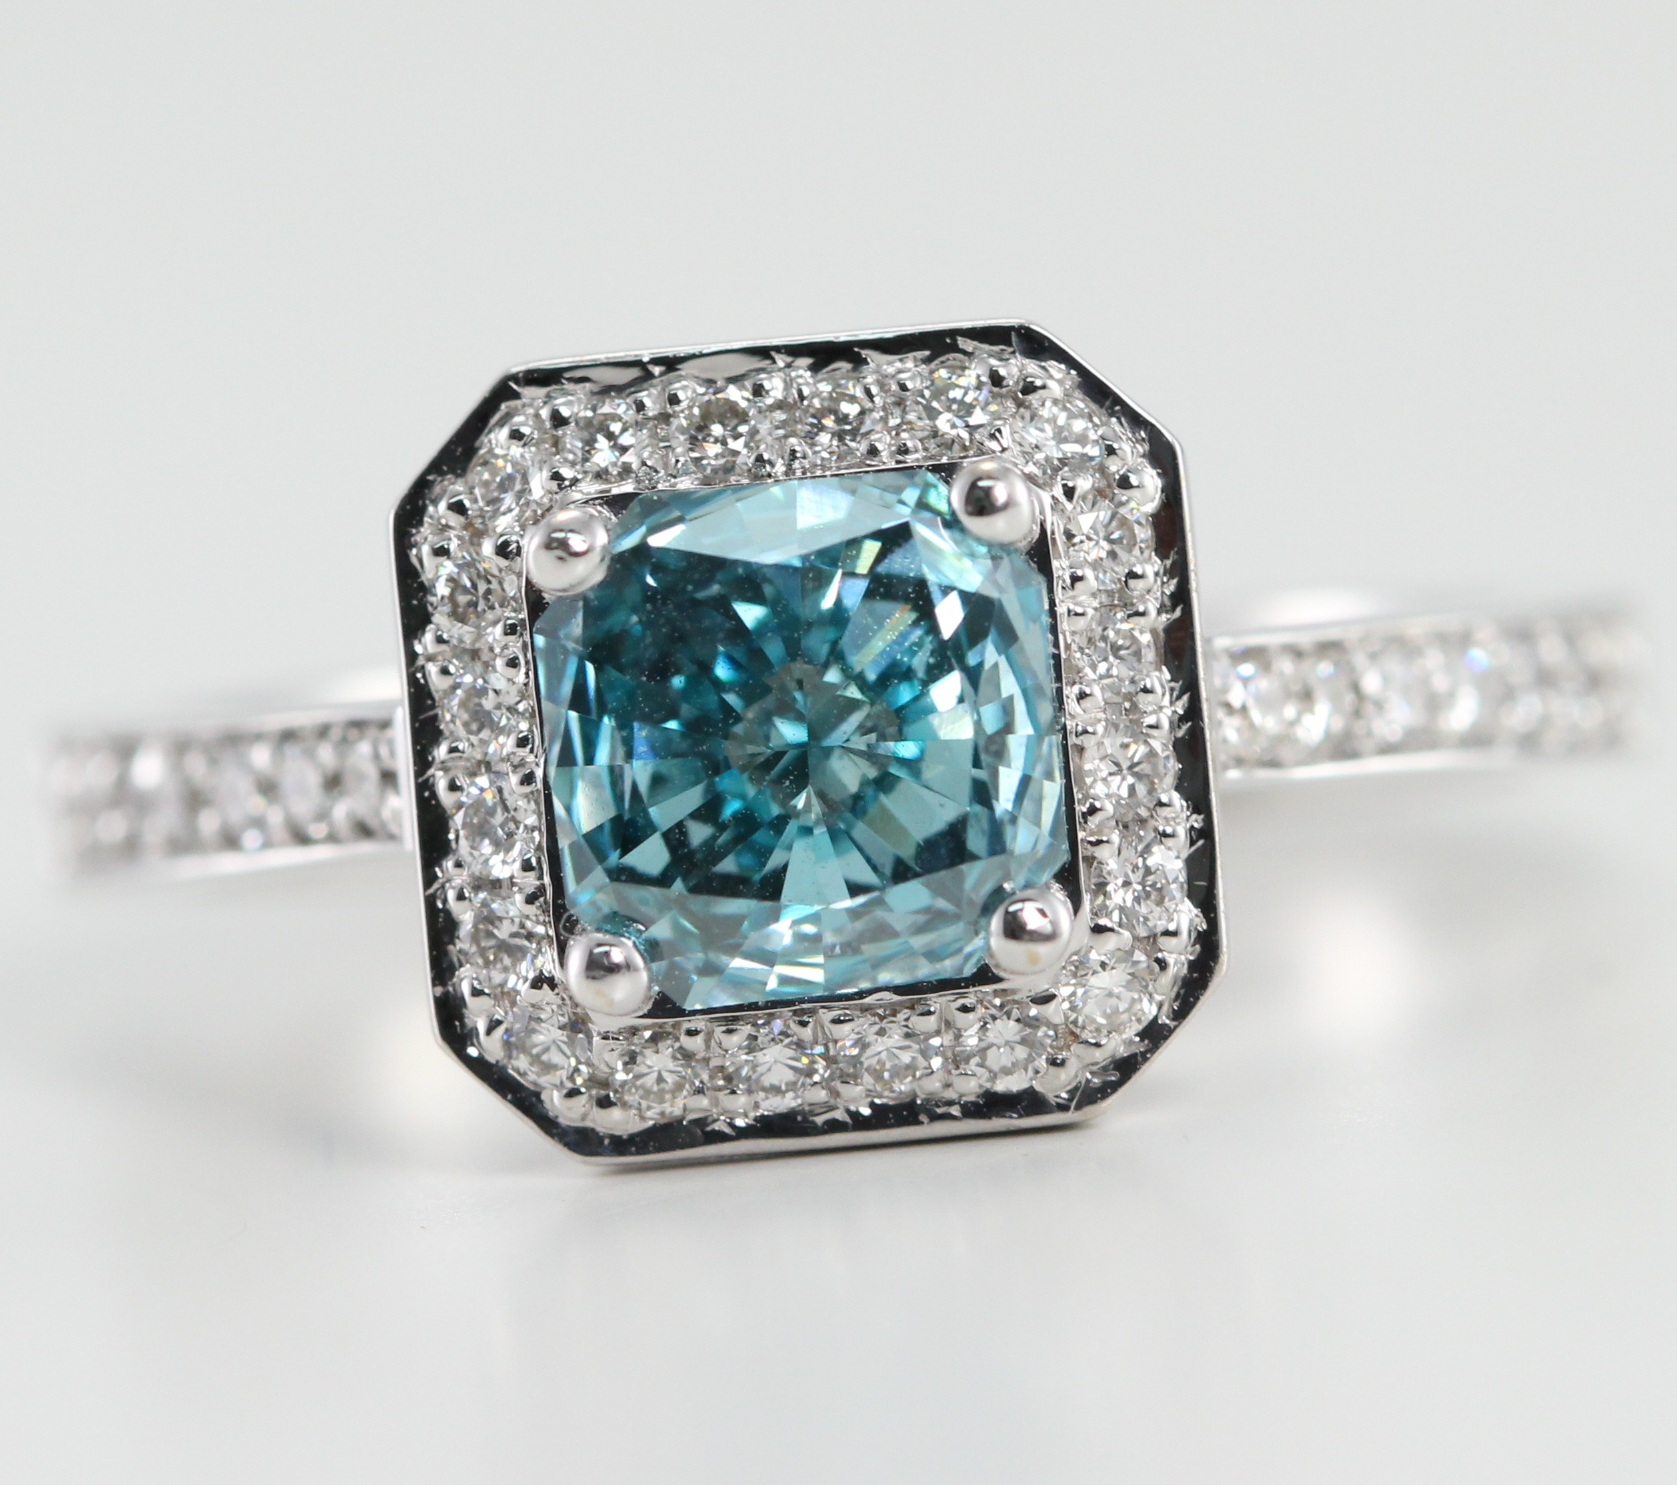 million millennium photo auction provided beers flawless at diamond this sell could over oval rare jewel de sothebys time by s a shows sotheby for colored largest carat blue internally